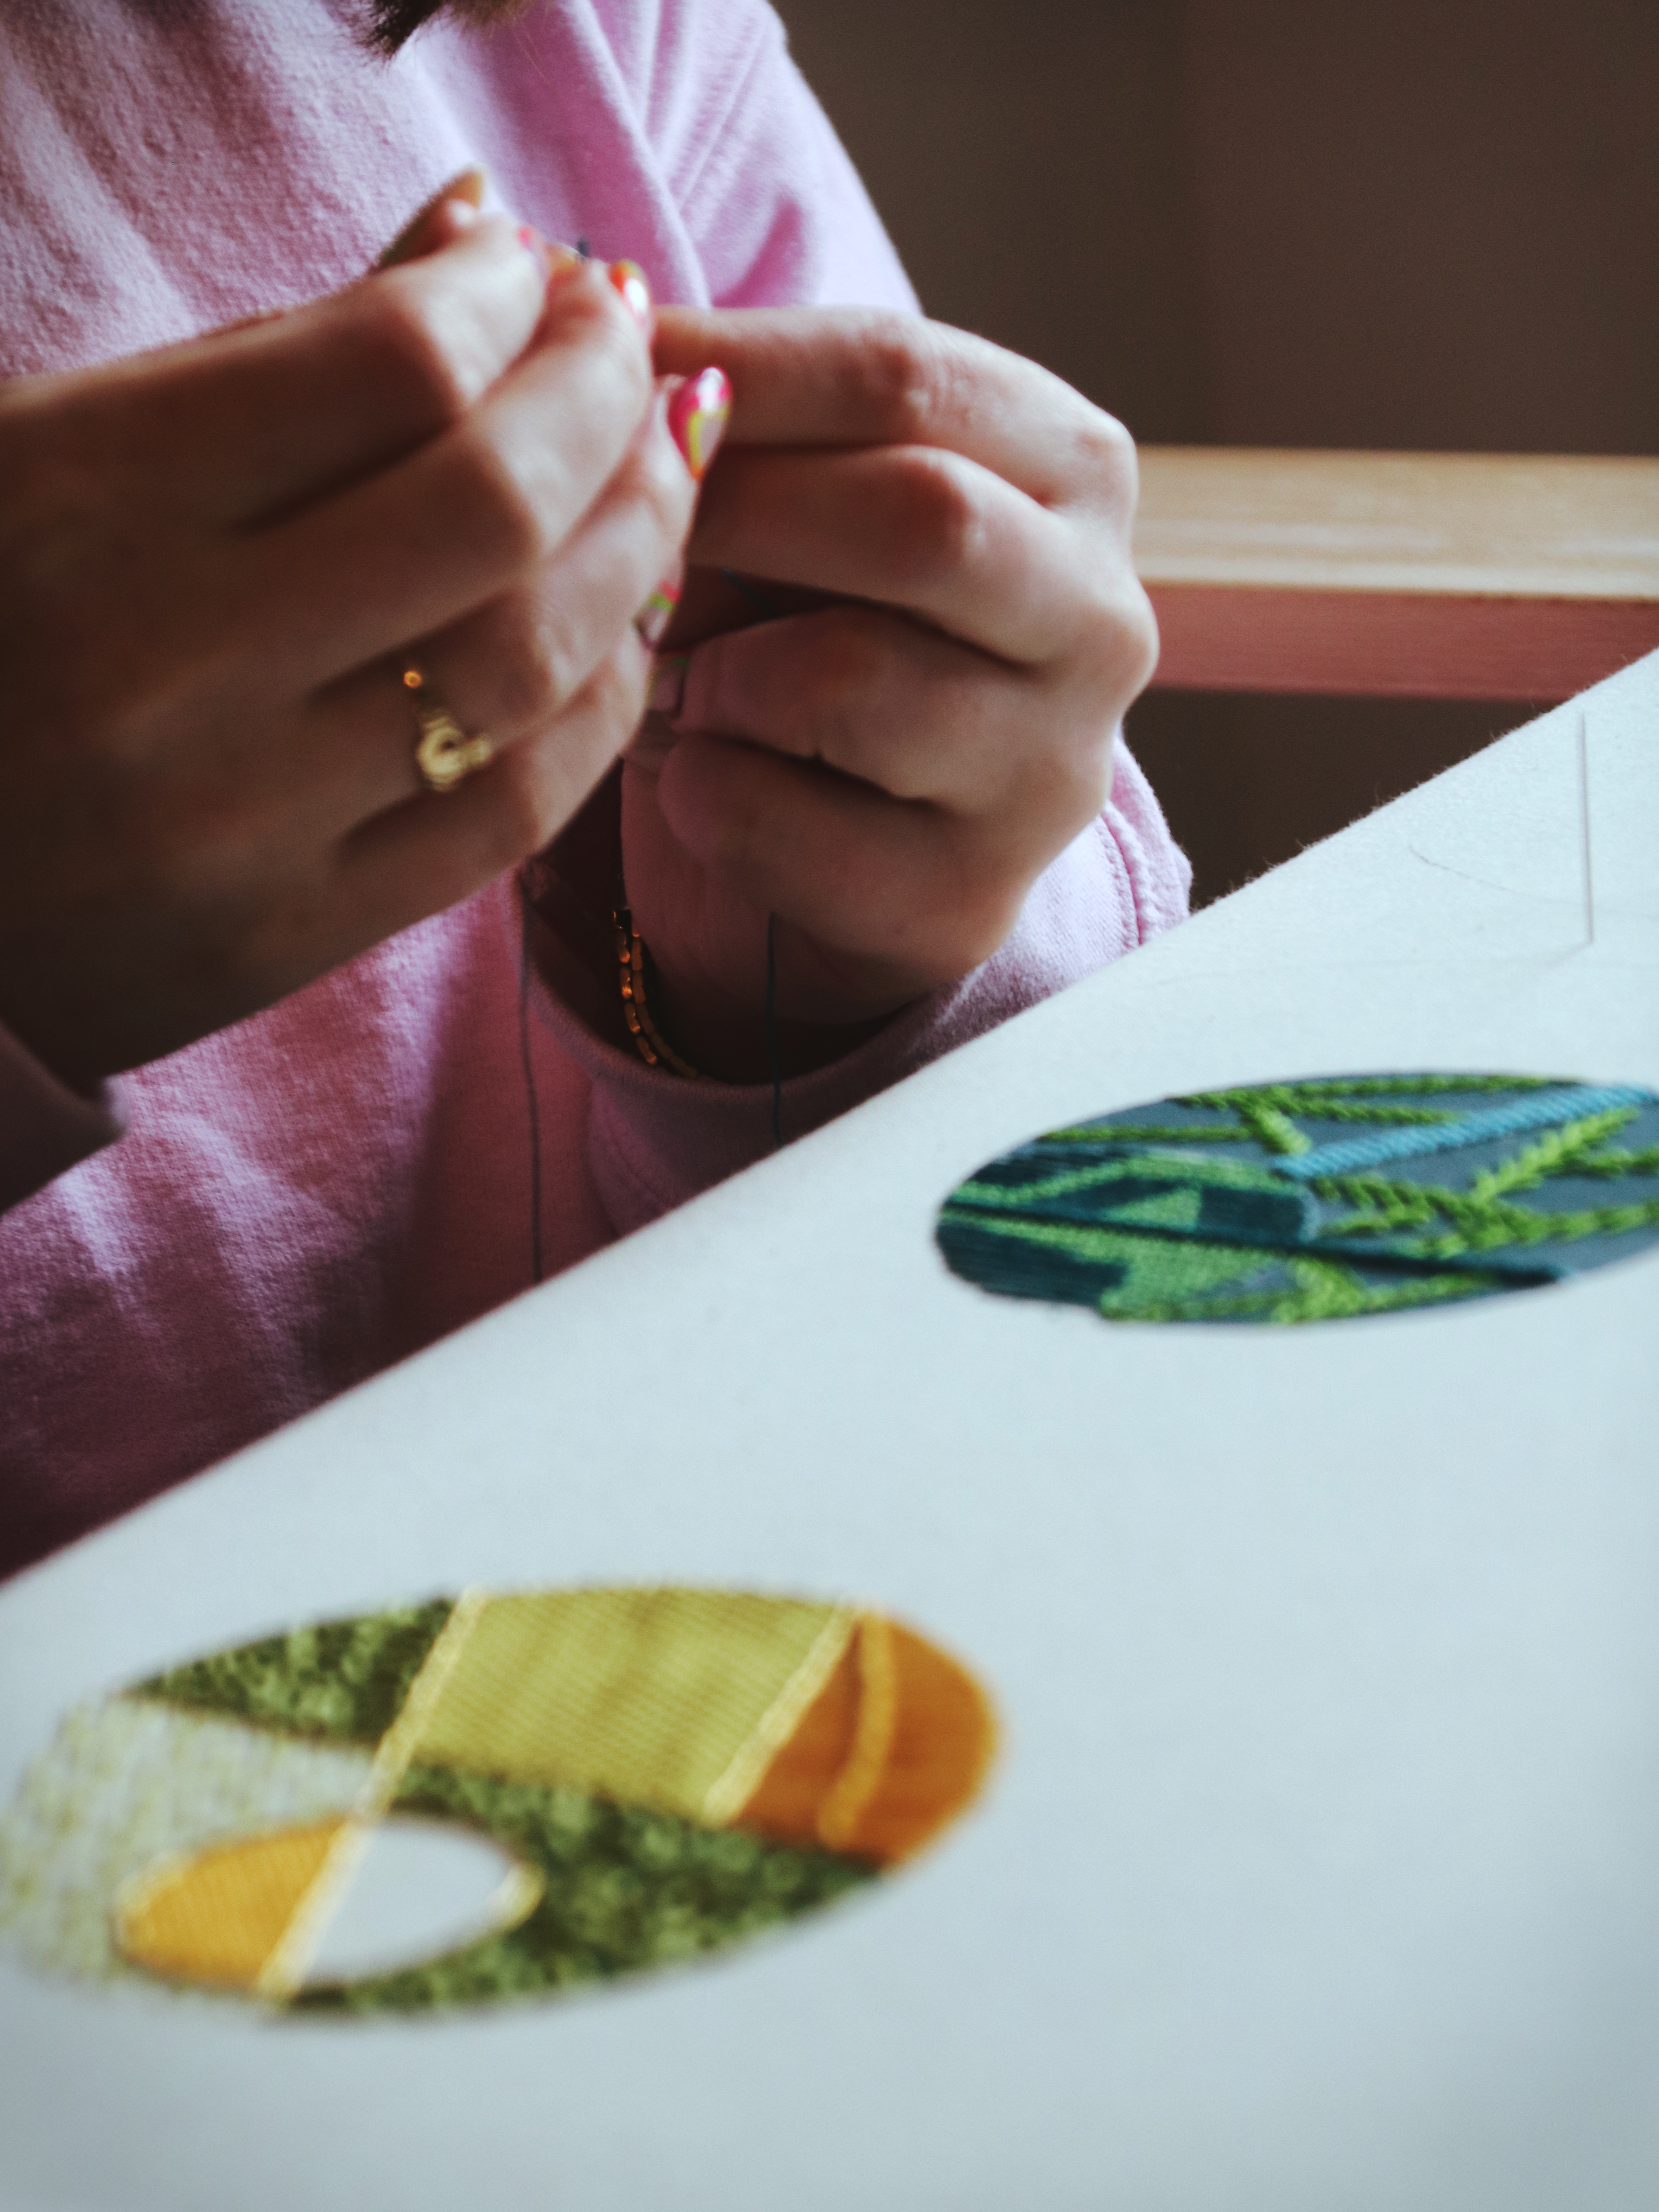 hands embroidering thread